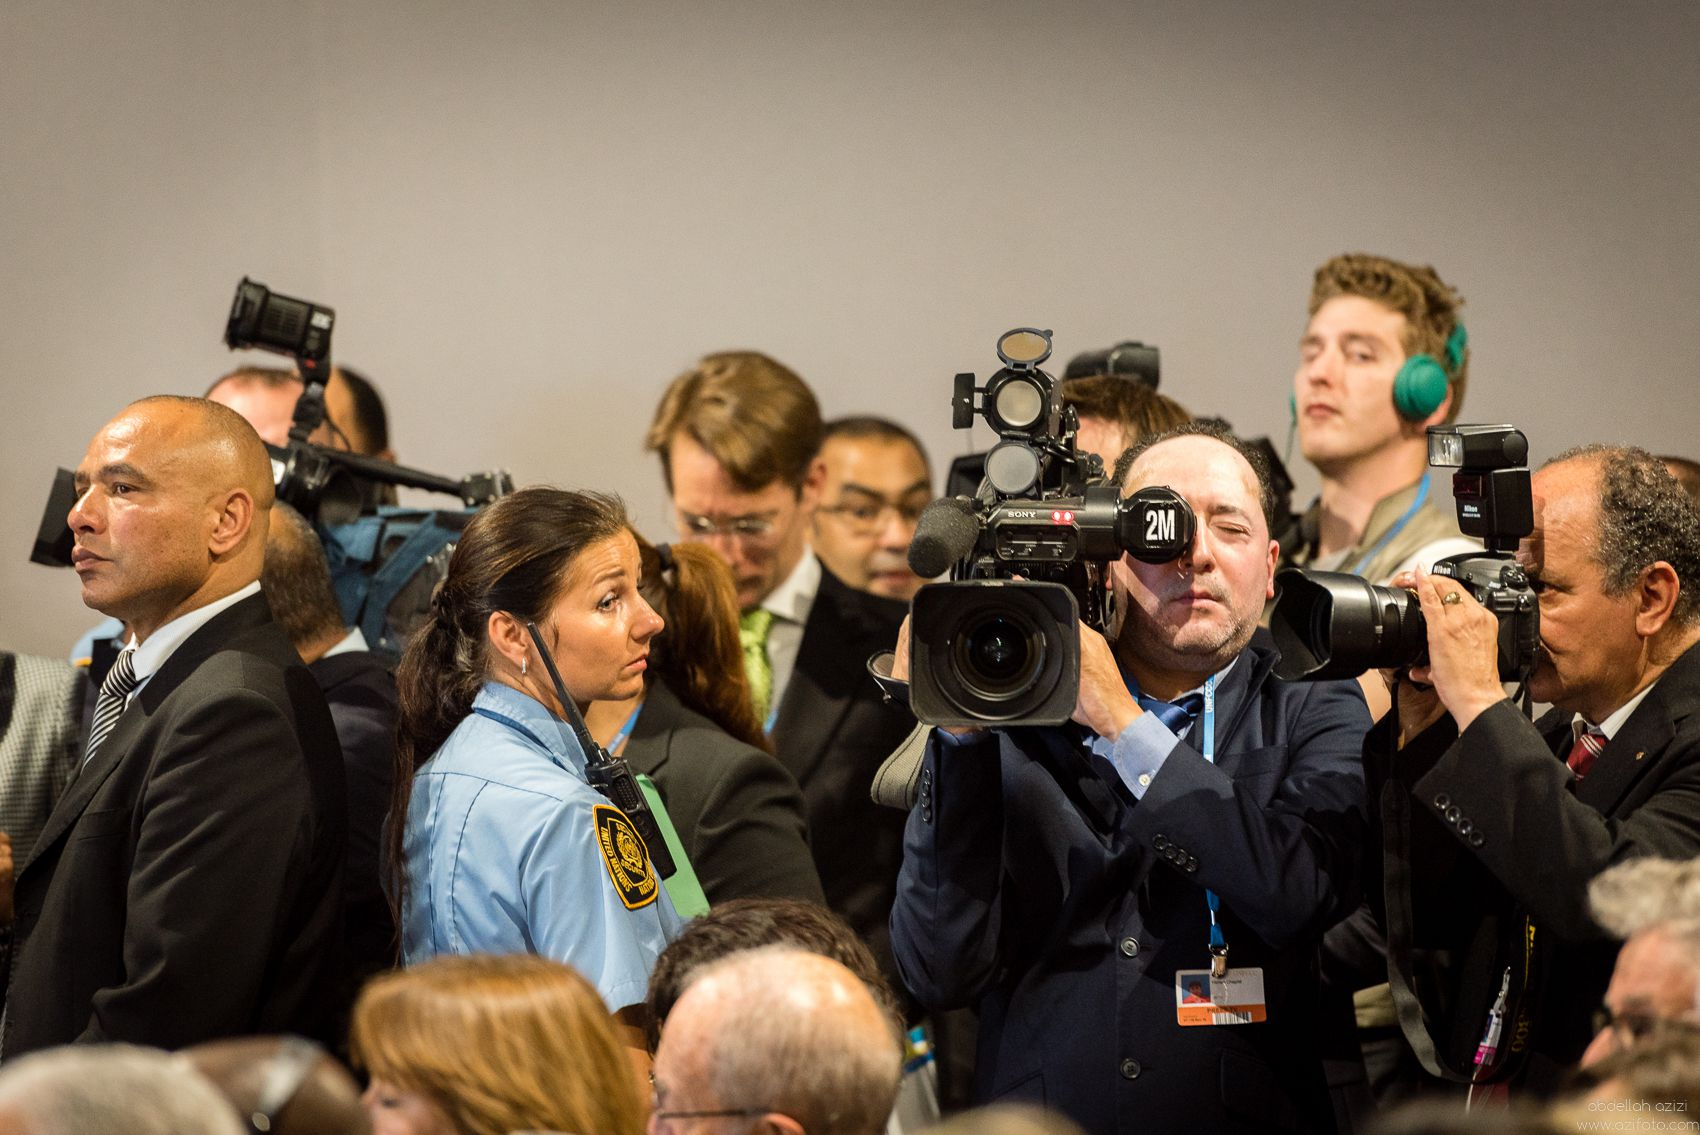 Cop22 - - Event photographer